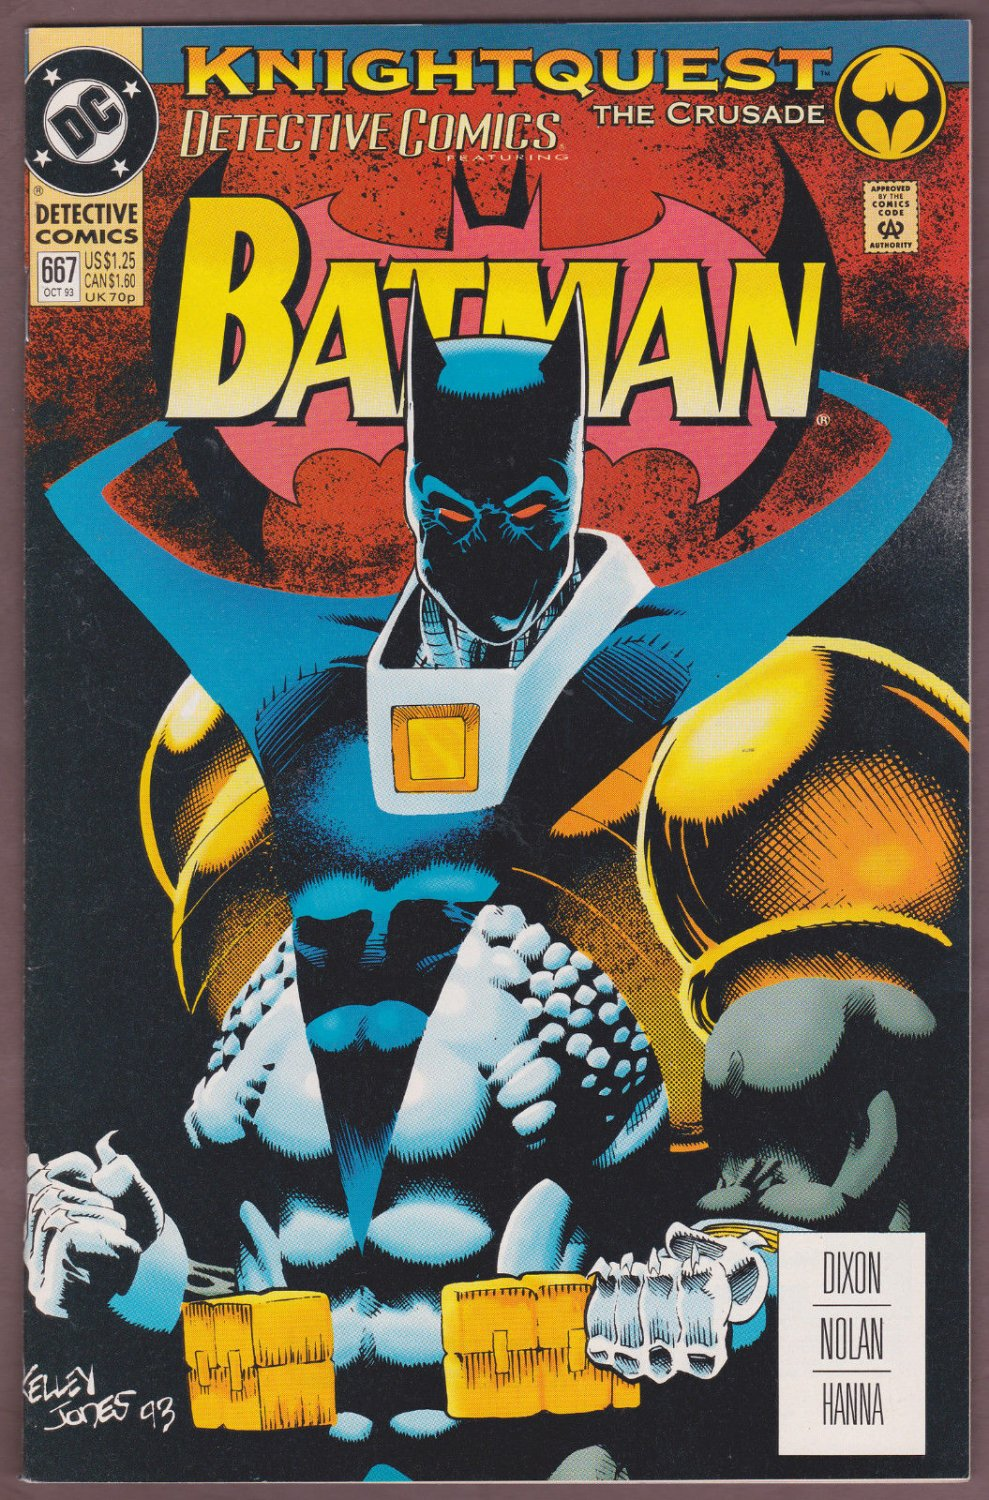 DETECTIVE COMICS #667 Vol. 1, Batman